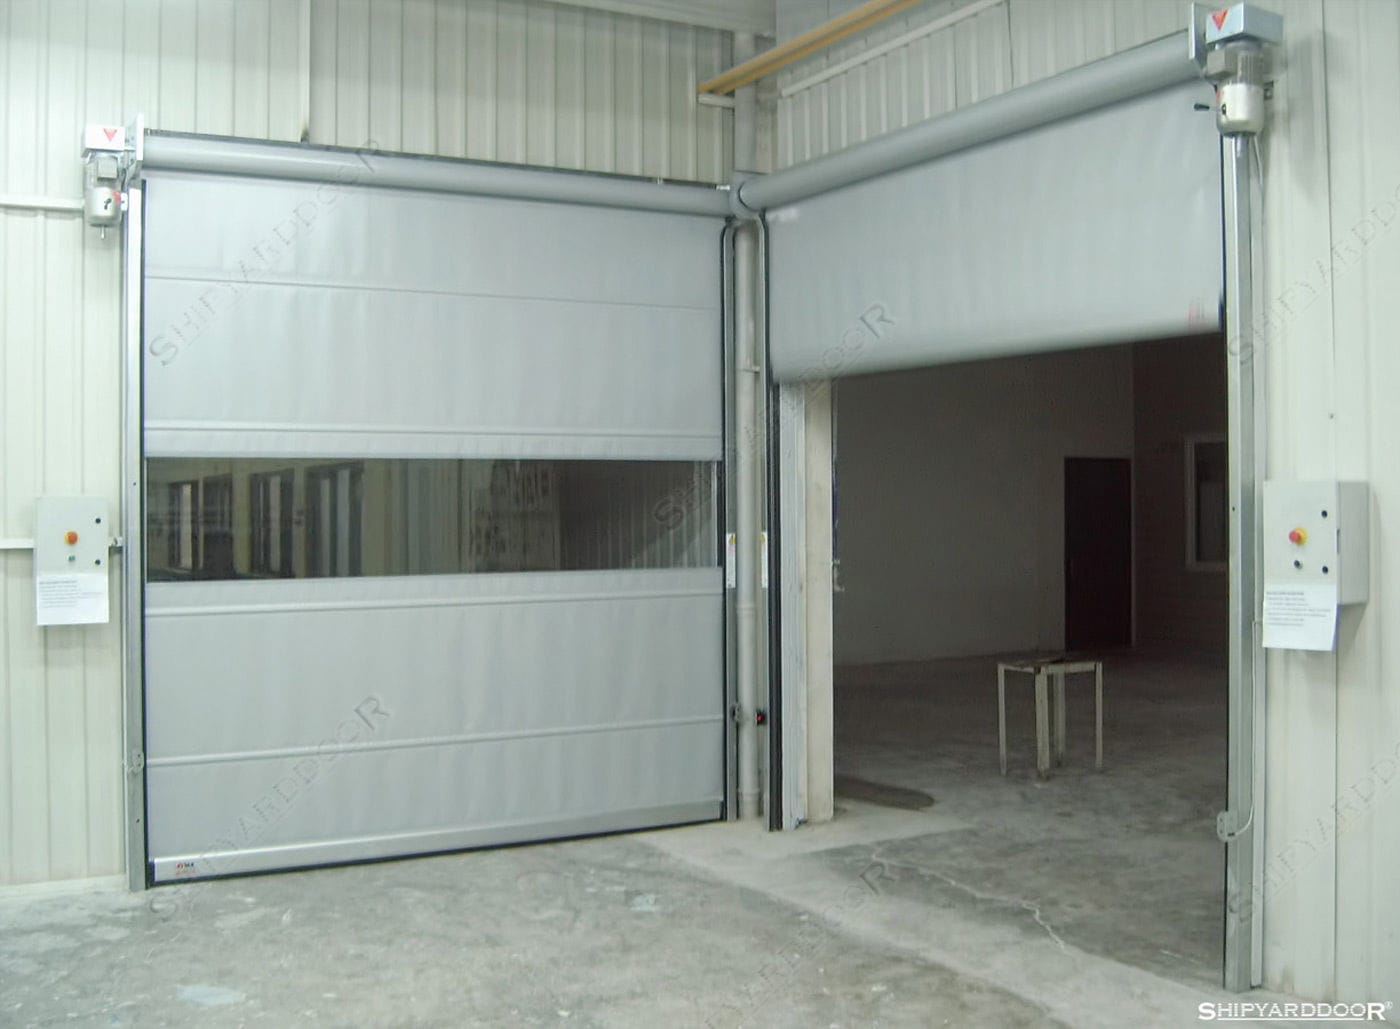 ... roll-up door / fabric / PVC / industrial & Roll-up door / fabric / PVC / industrial - SHIPYARDDOOR (Hangar Door ...